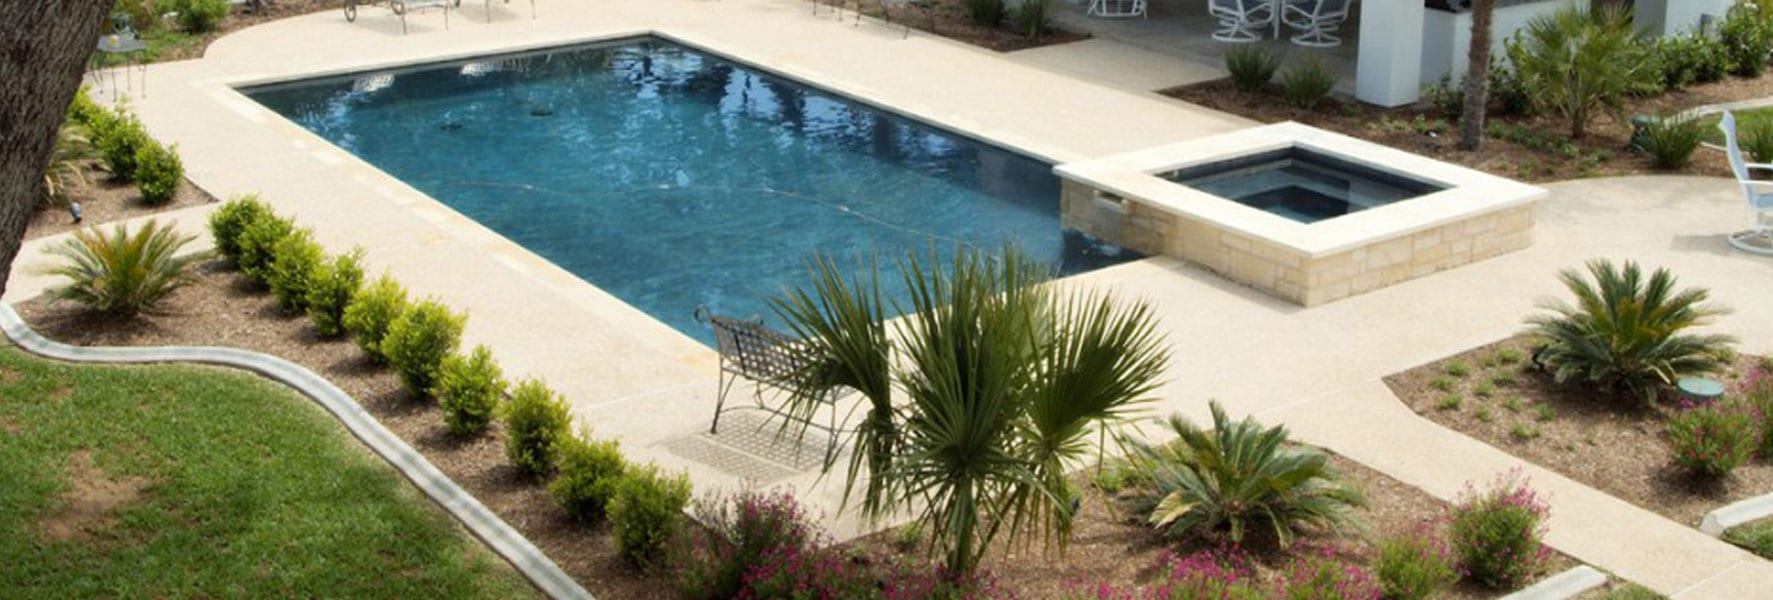 Challenger Pools Custom Pools New Port Richey Swimming Pool Construction Tampa Bay